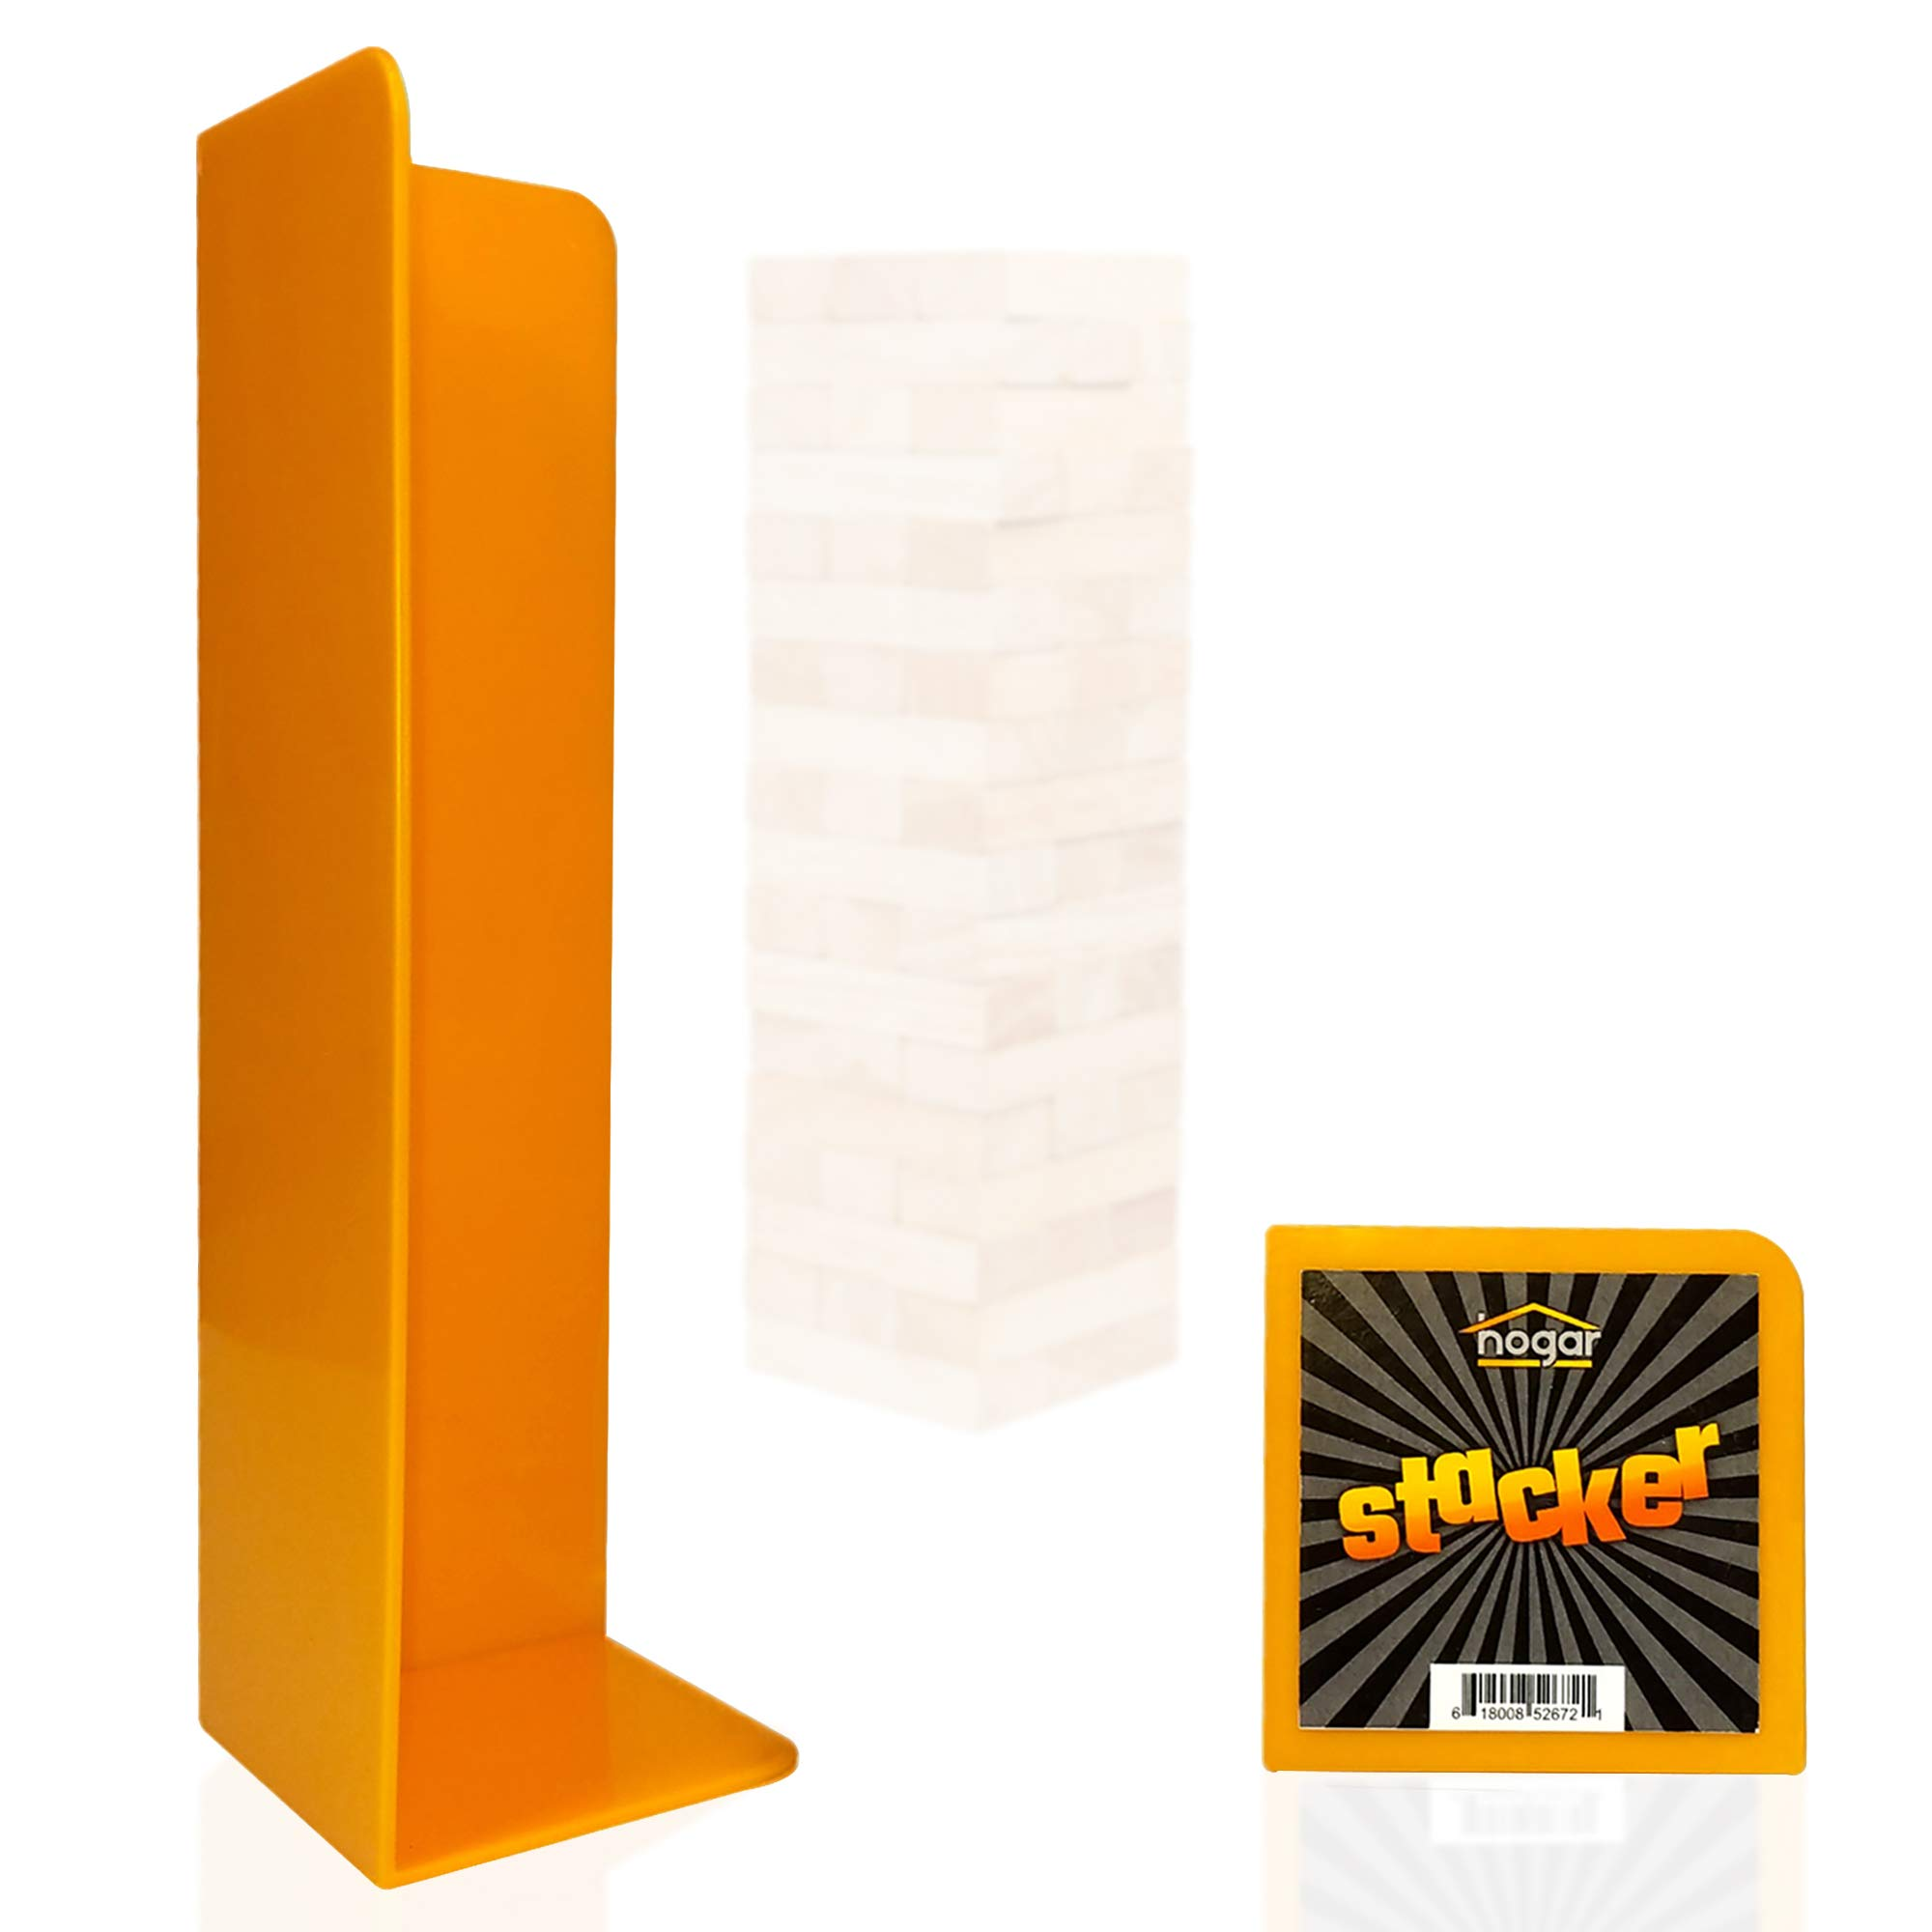 Hogar Wood Block Tower Stacking Tray Game Accessory Ages 6 to Adult - Compatible with Tipsy Tower, Lewo, WE Games and More by Hogar